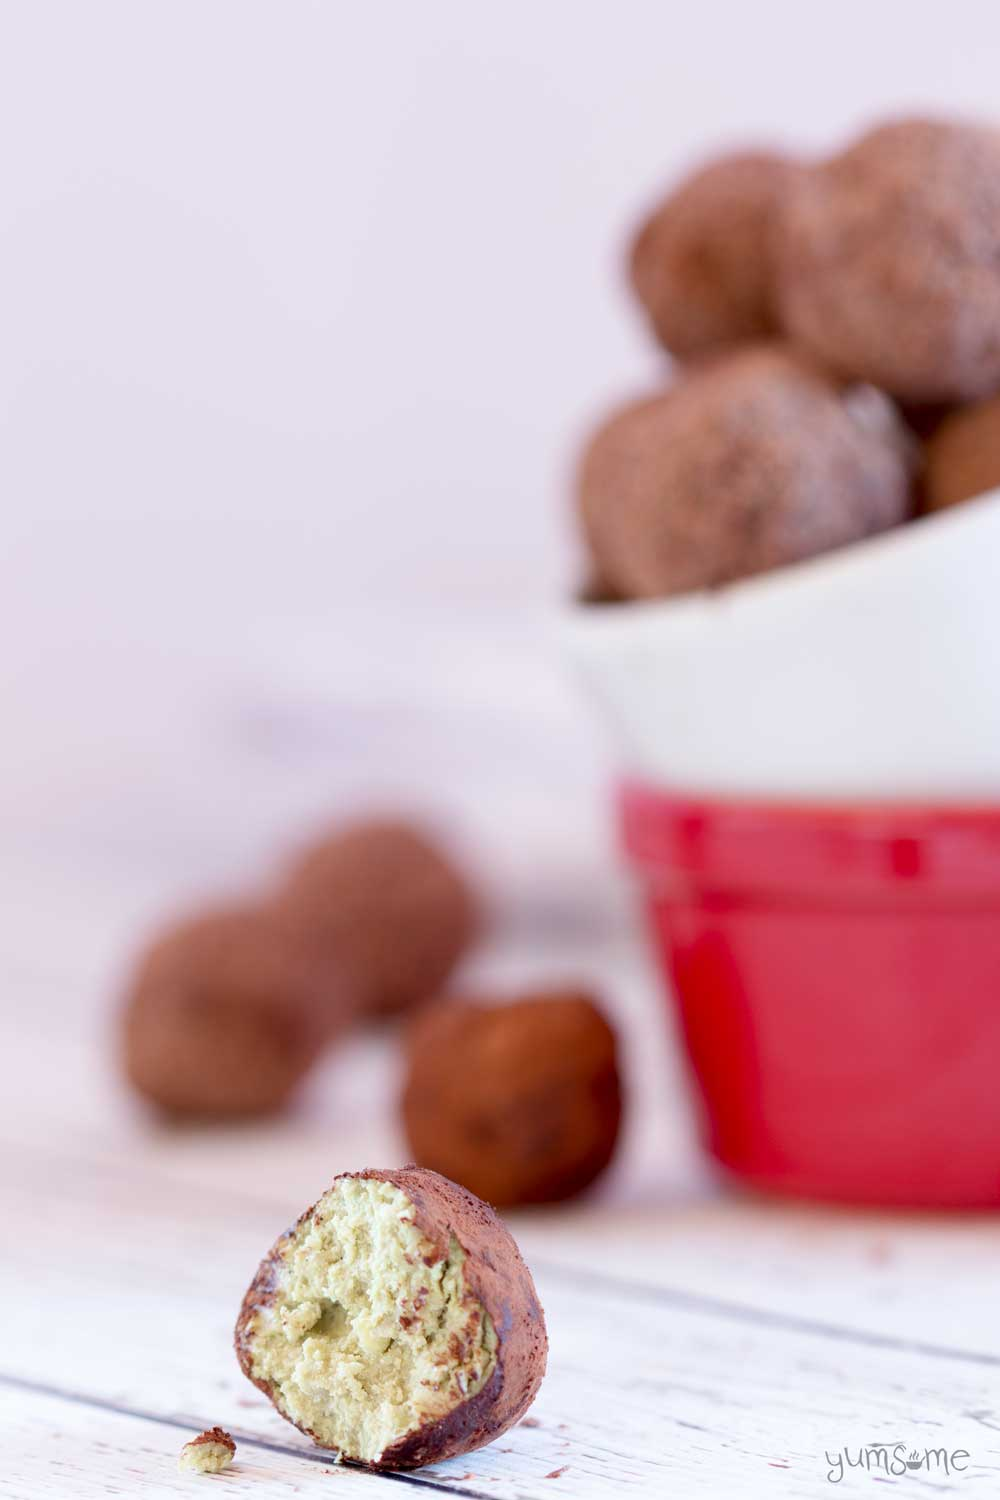 A cut open vegan chocolate matcha truffle on a white table, with more truffles in the background in red and white dish.